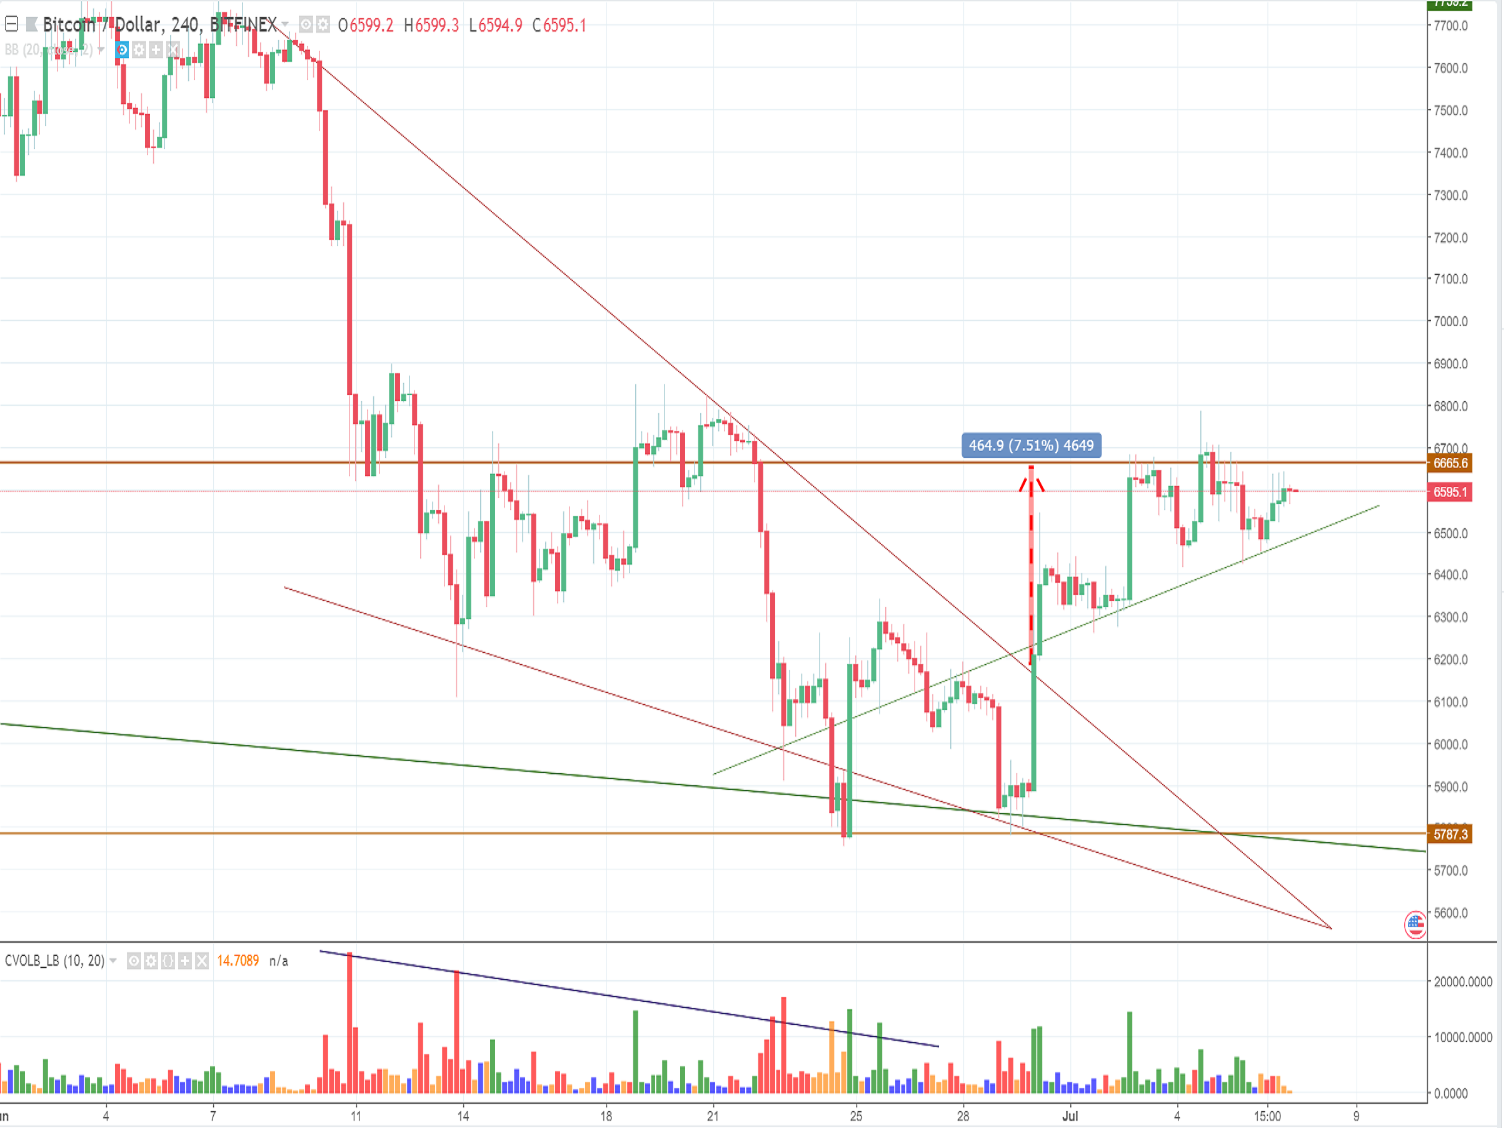 Bitcoin price analysis and forecast (Saturday, July 7th): A slide-down may occur